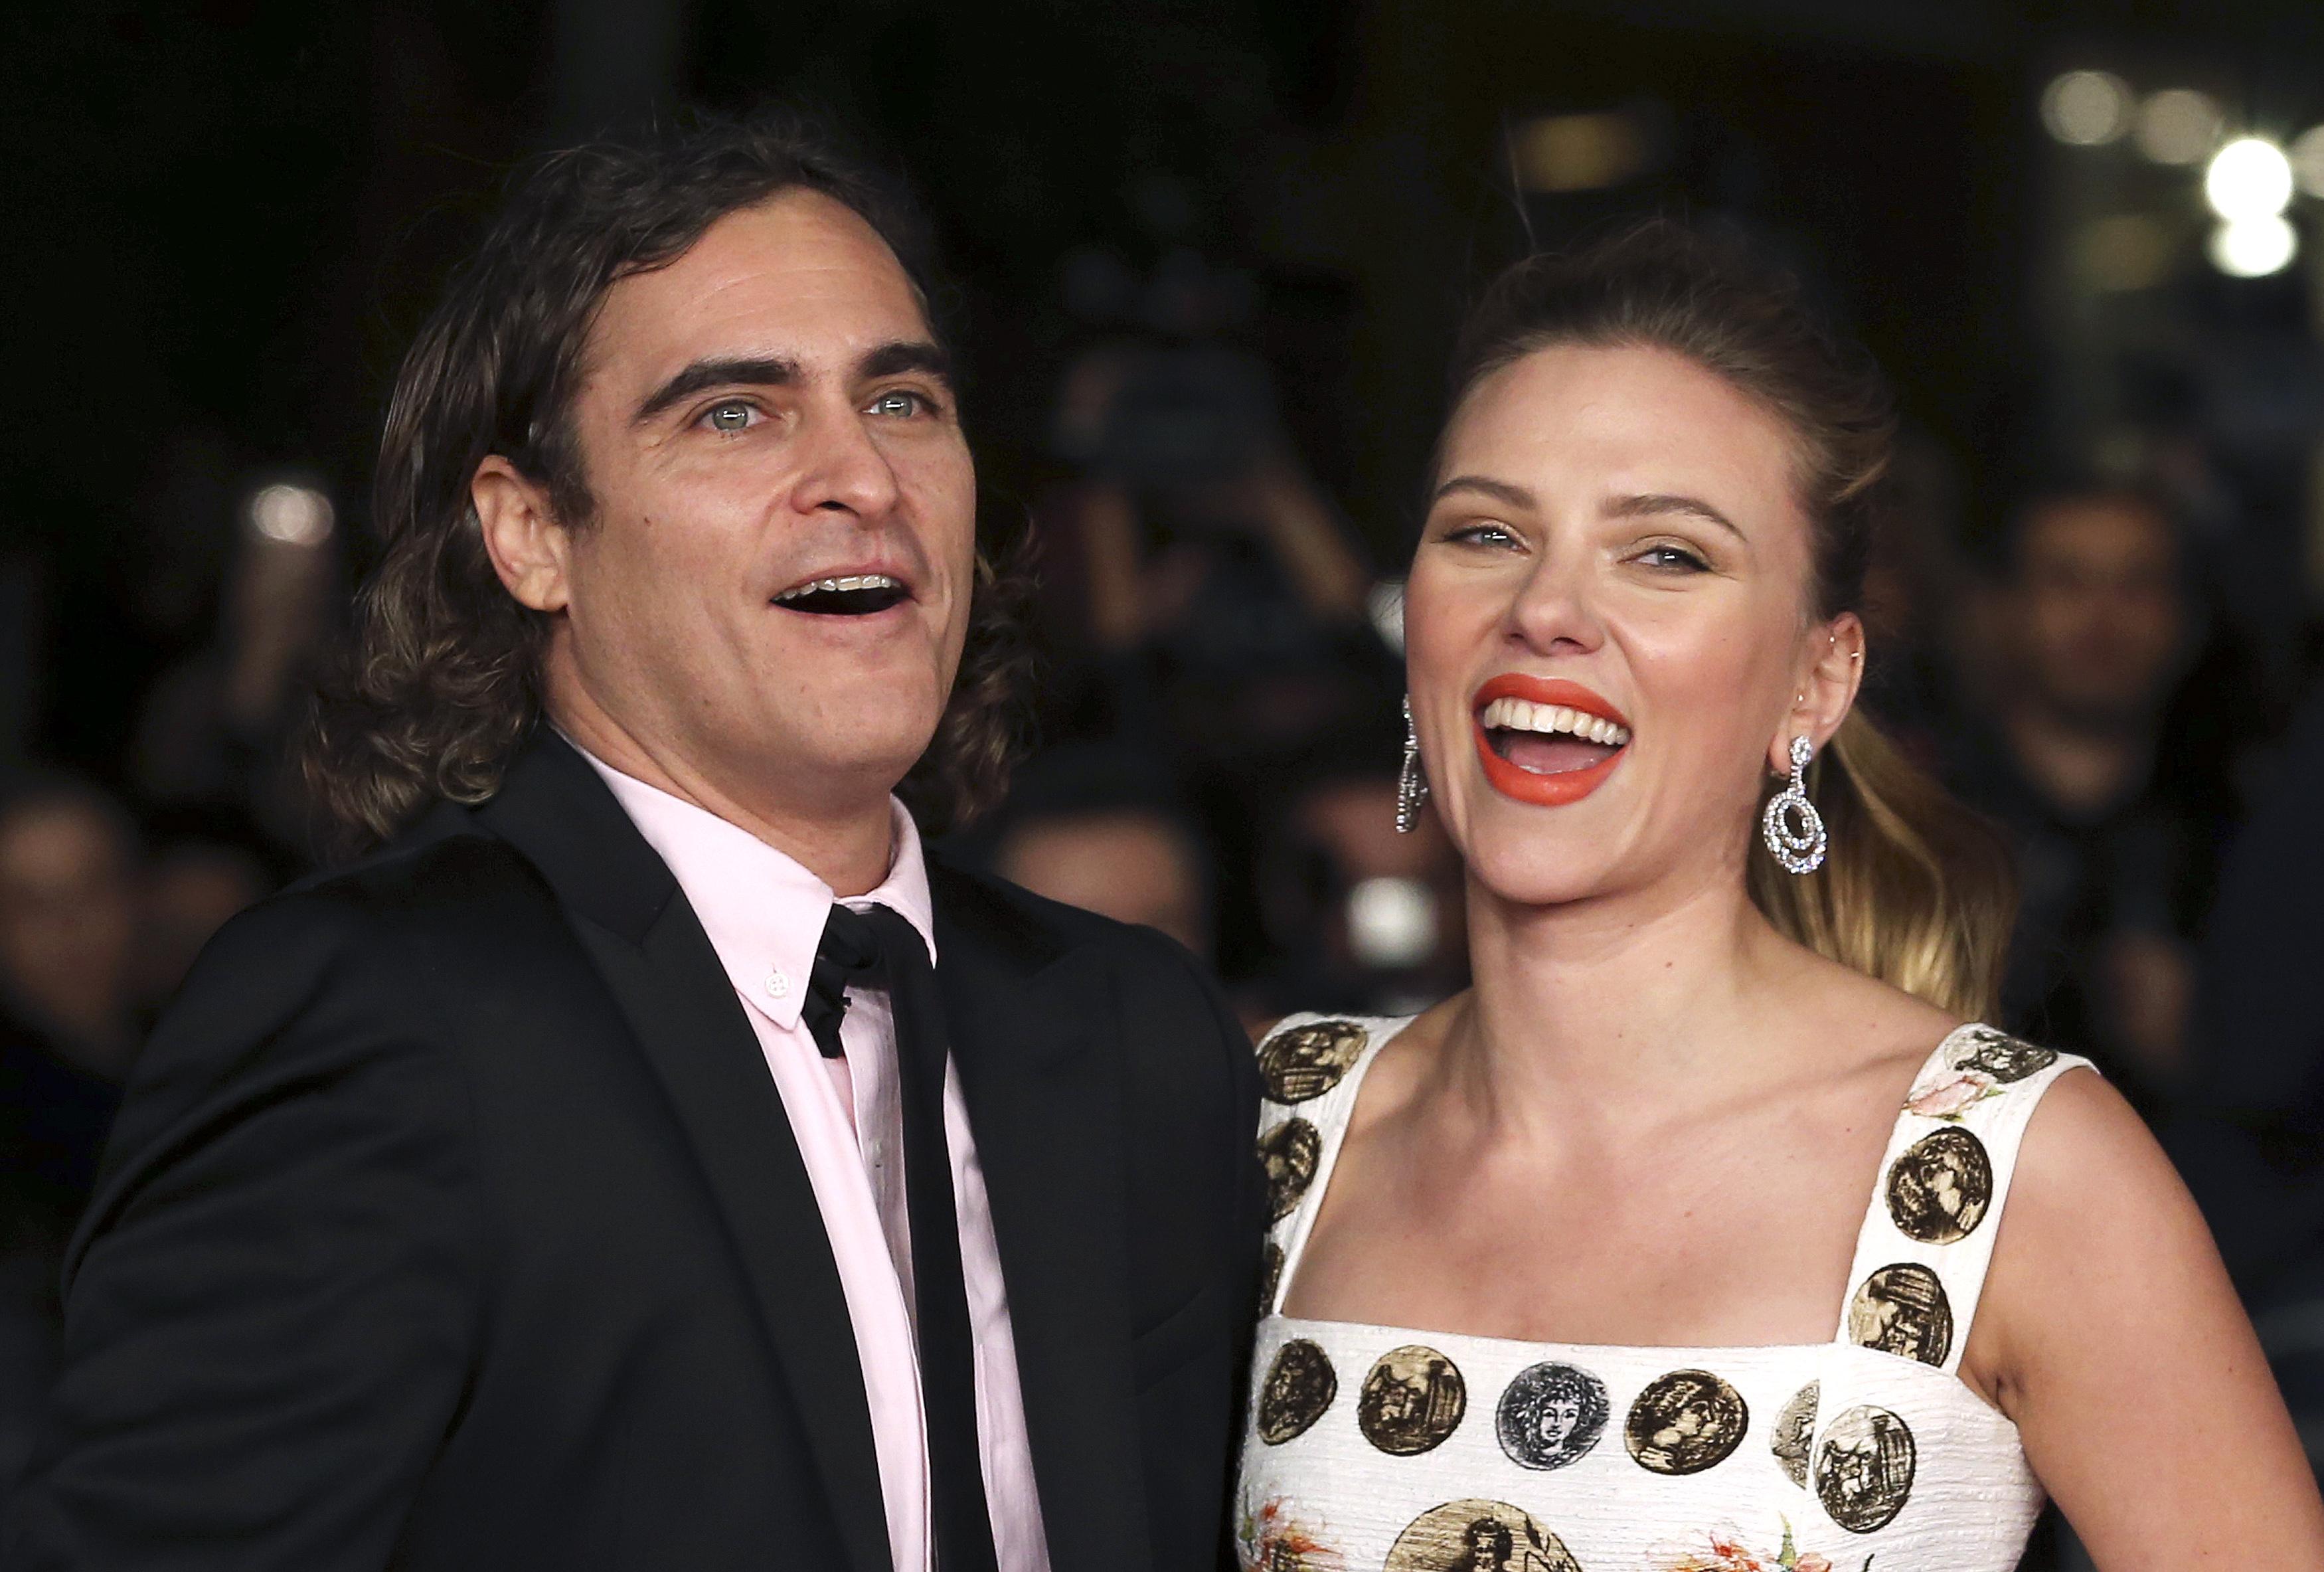 """Cast members Joaquin Phoenix (L) and Scarlett Johansson (R) arrive for a red carpet event for the movie """"Her"""" at the Rome Film Festival, November 10, 2013. REUTERS/Alessandro Bianchi (ITALY - Tags: ENTERTAINMENT) - RTX1583B"""